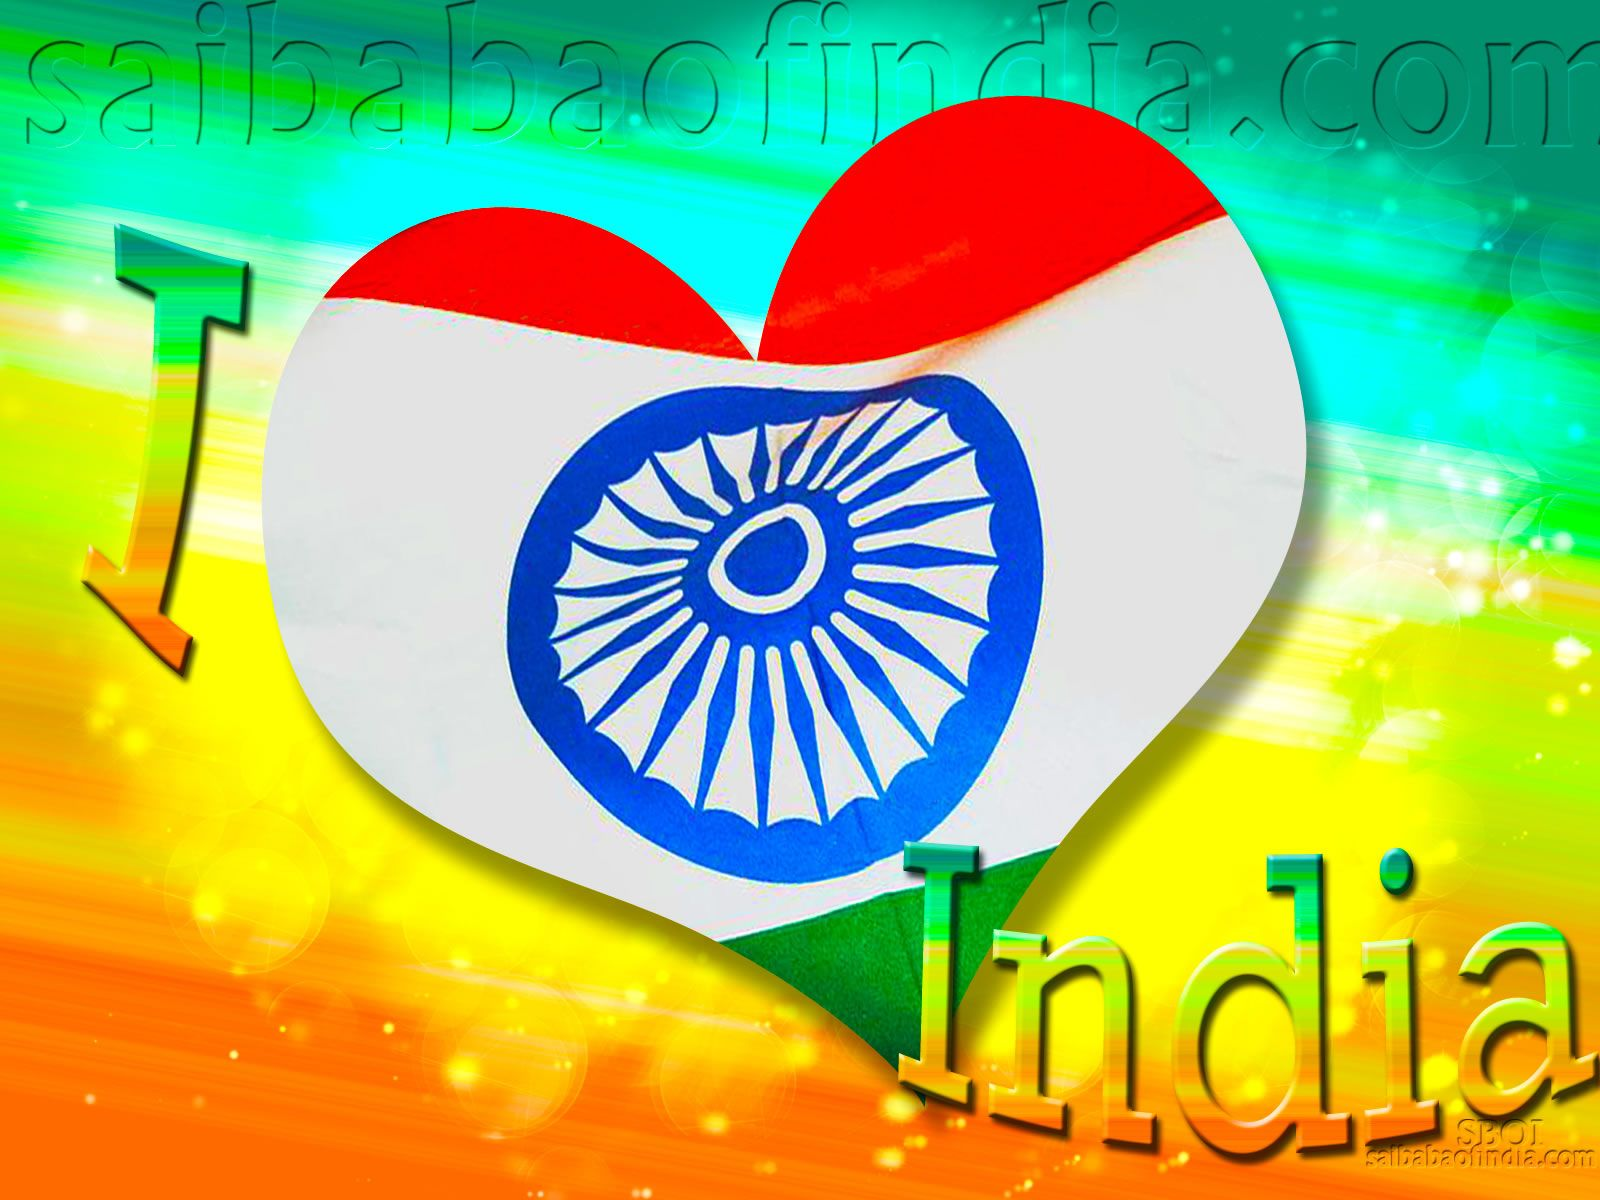 15 August Wallpapers India   HD Wallpapers Backgrounds of Your 1600x1200